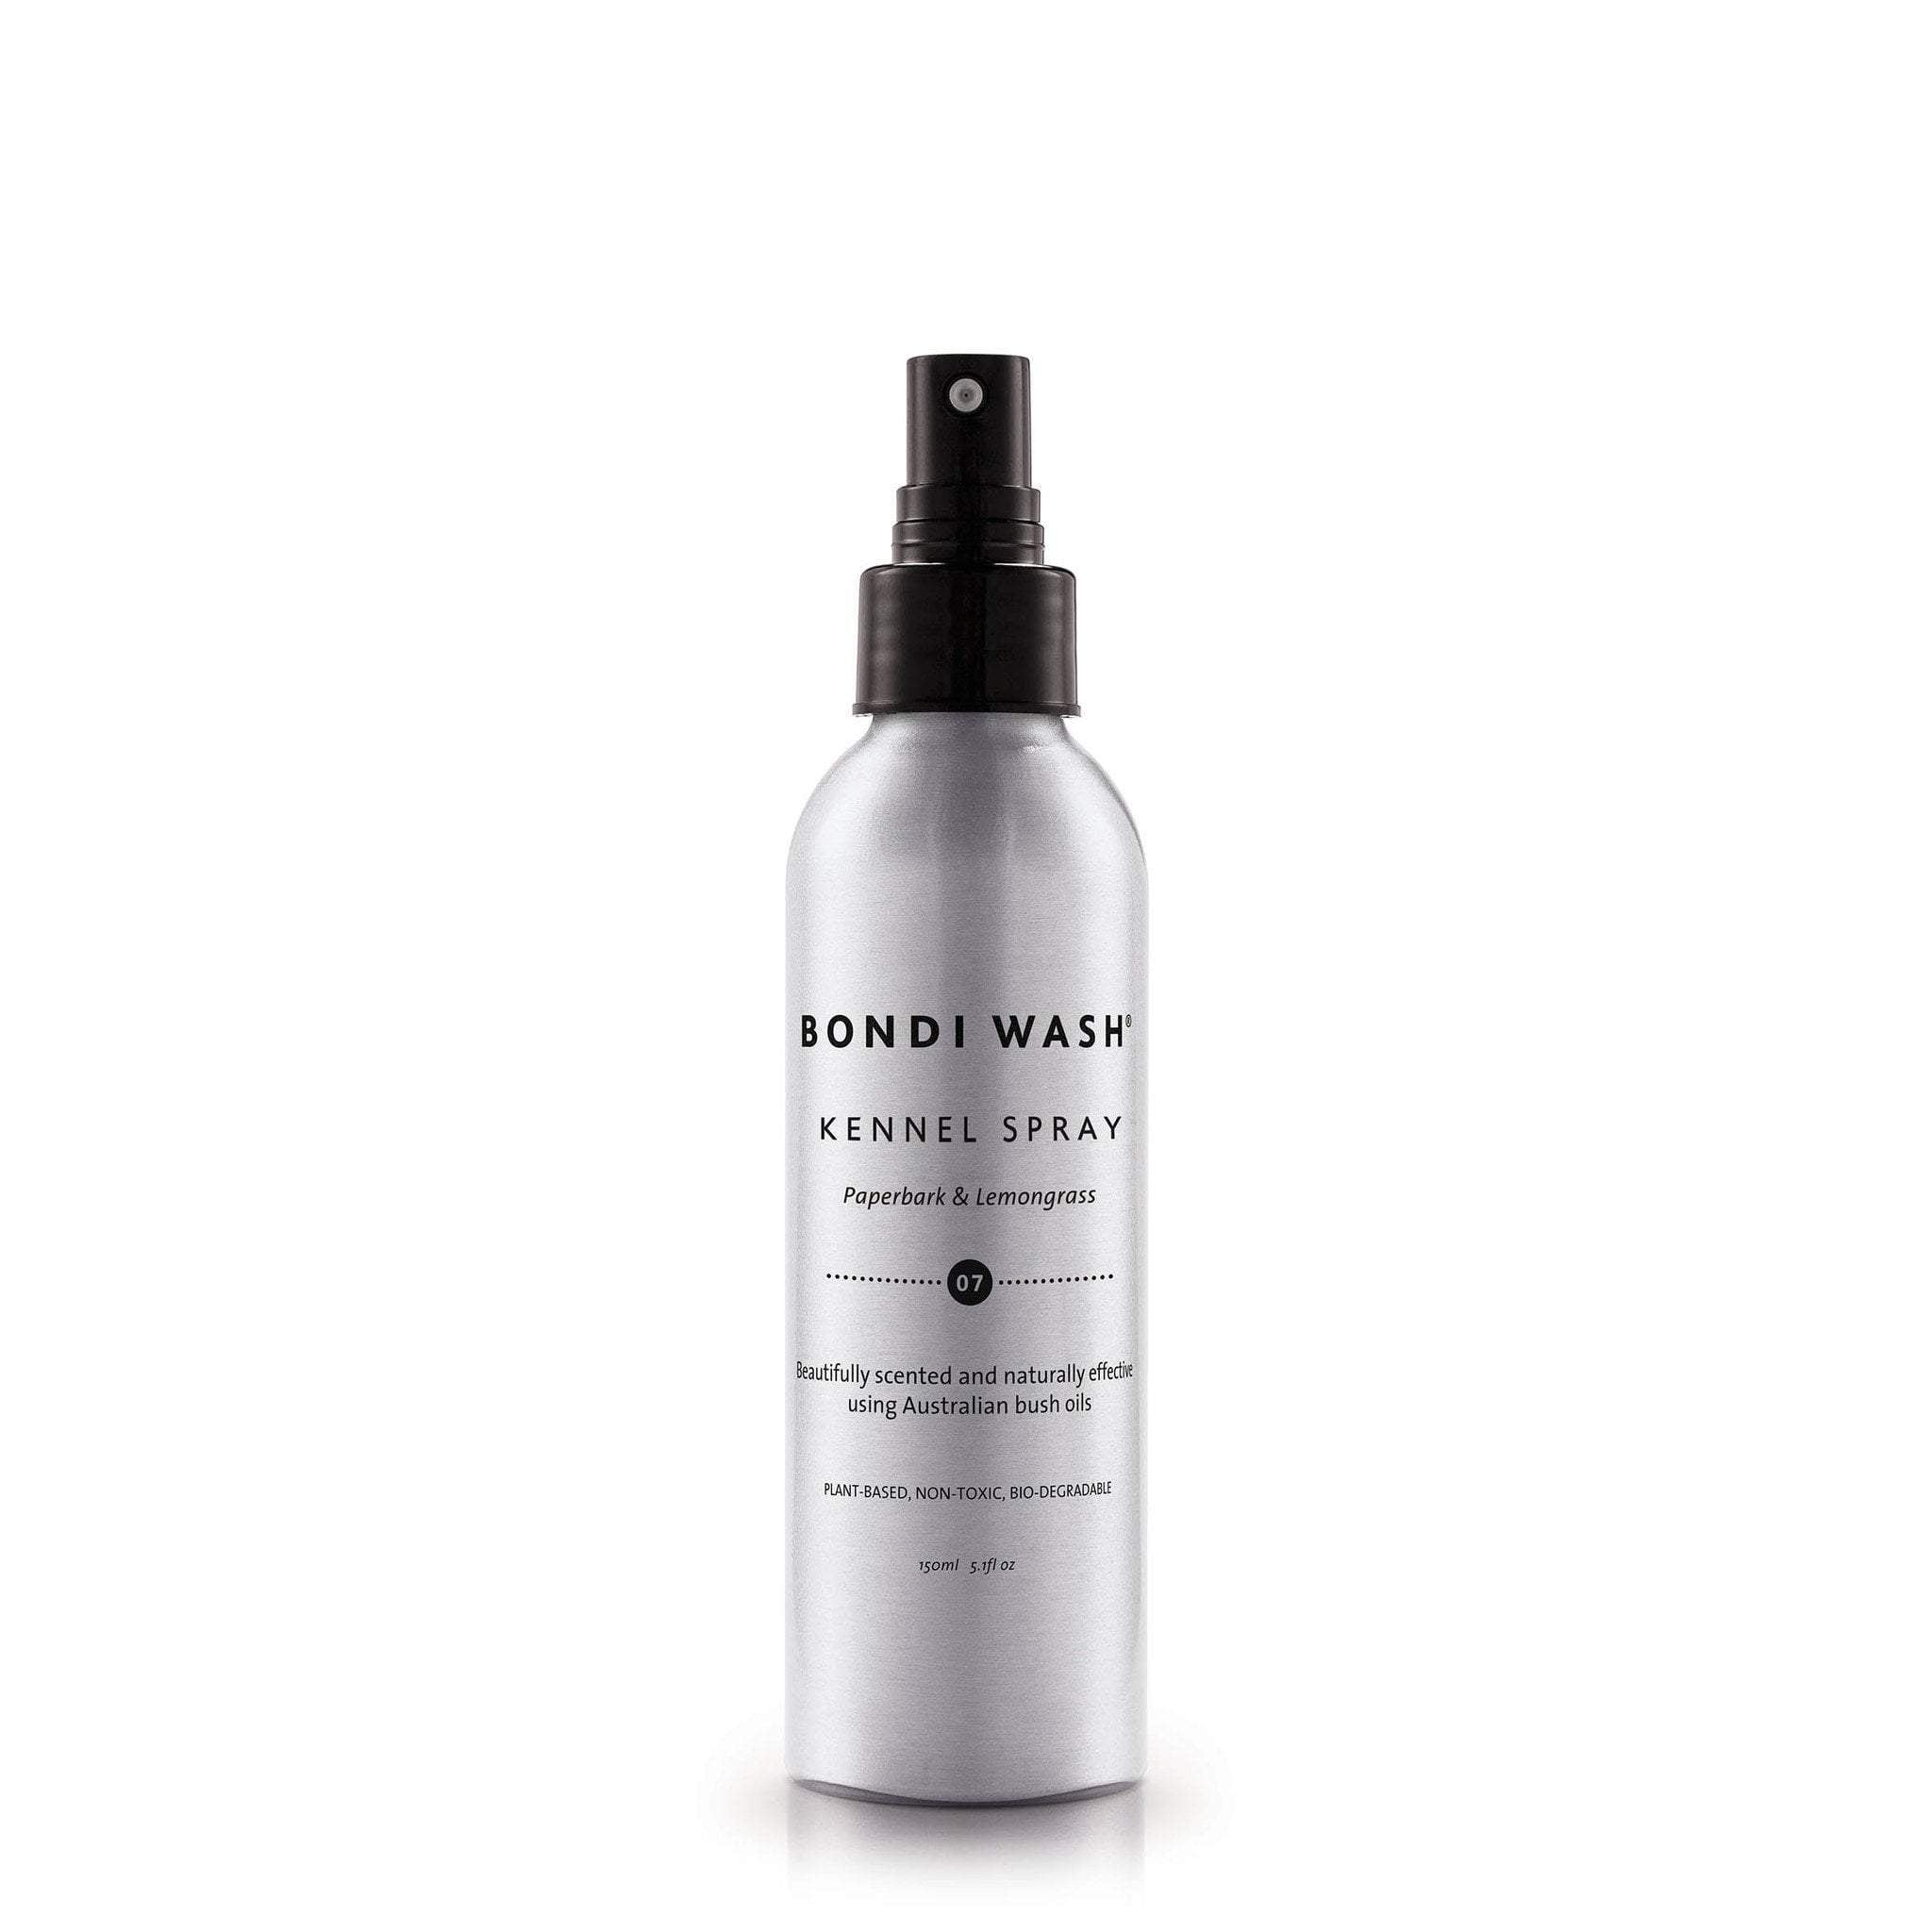 Bondi Wash Kennel Spray